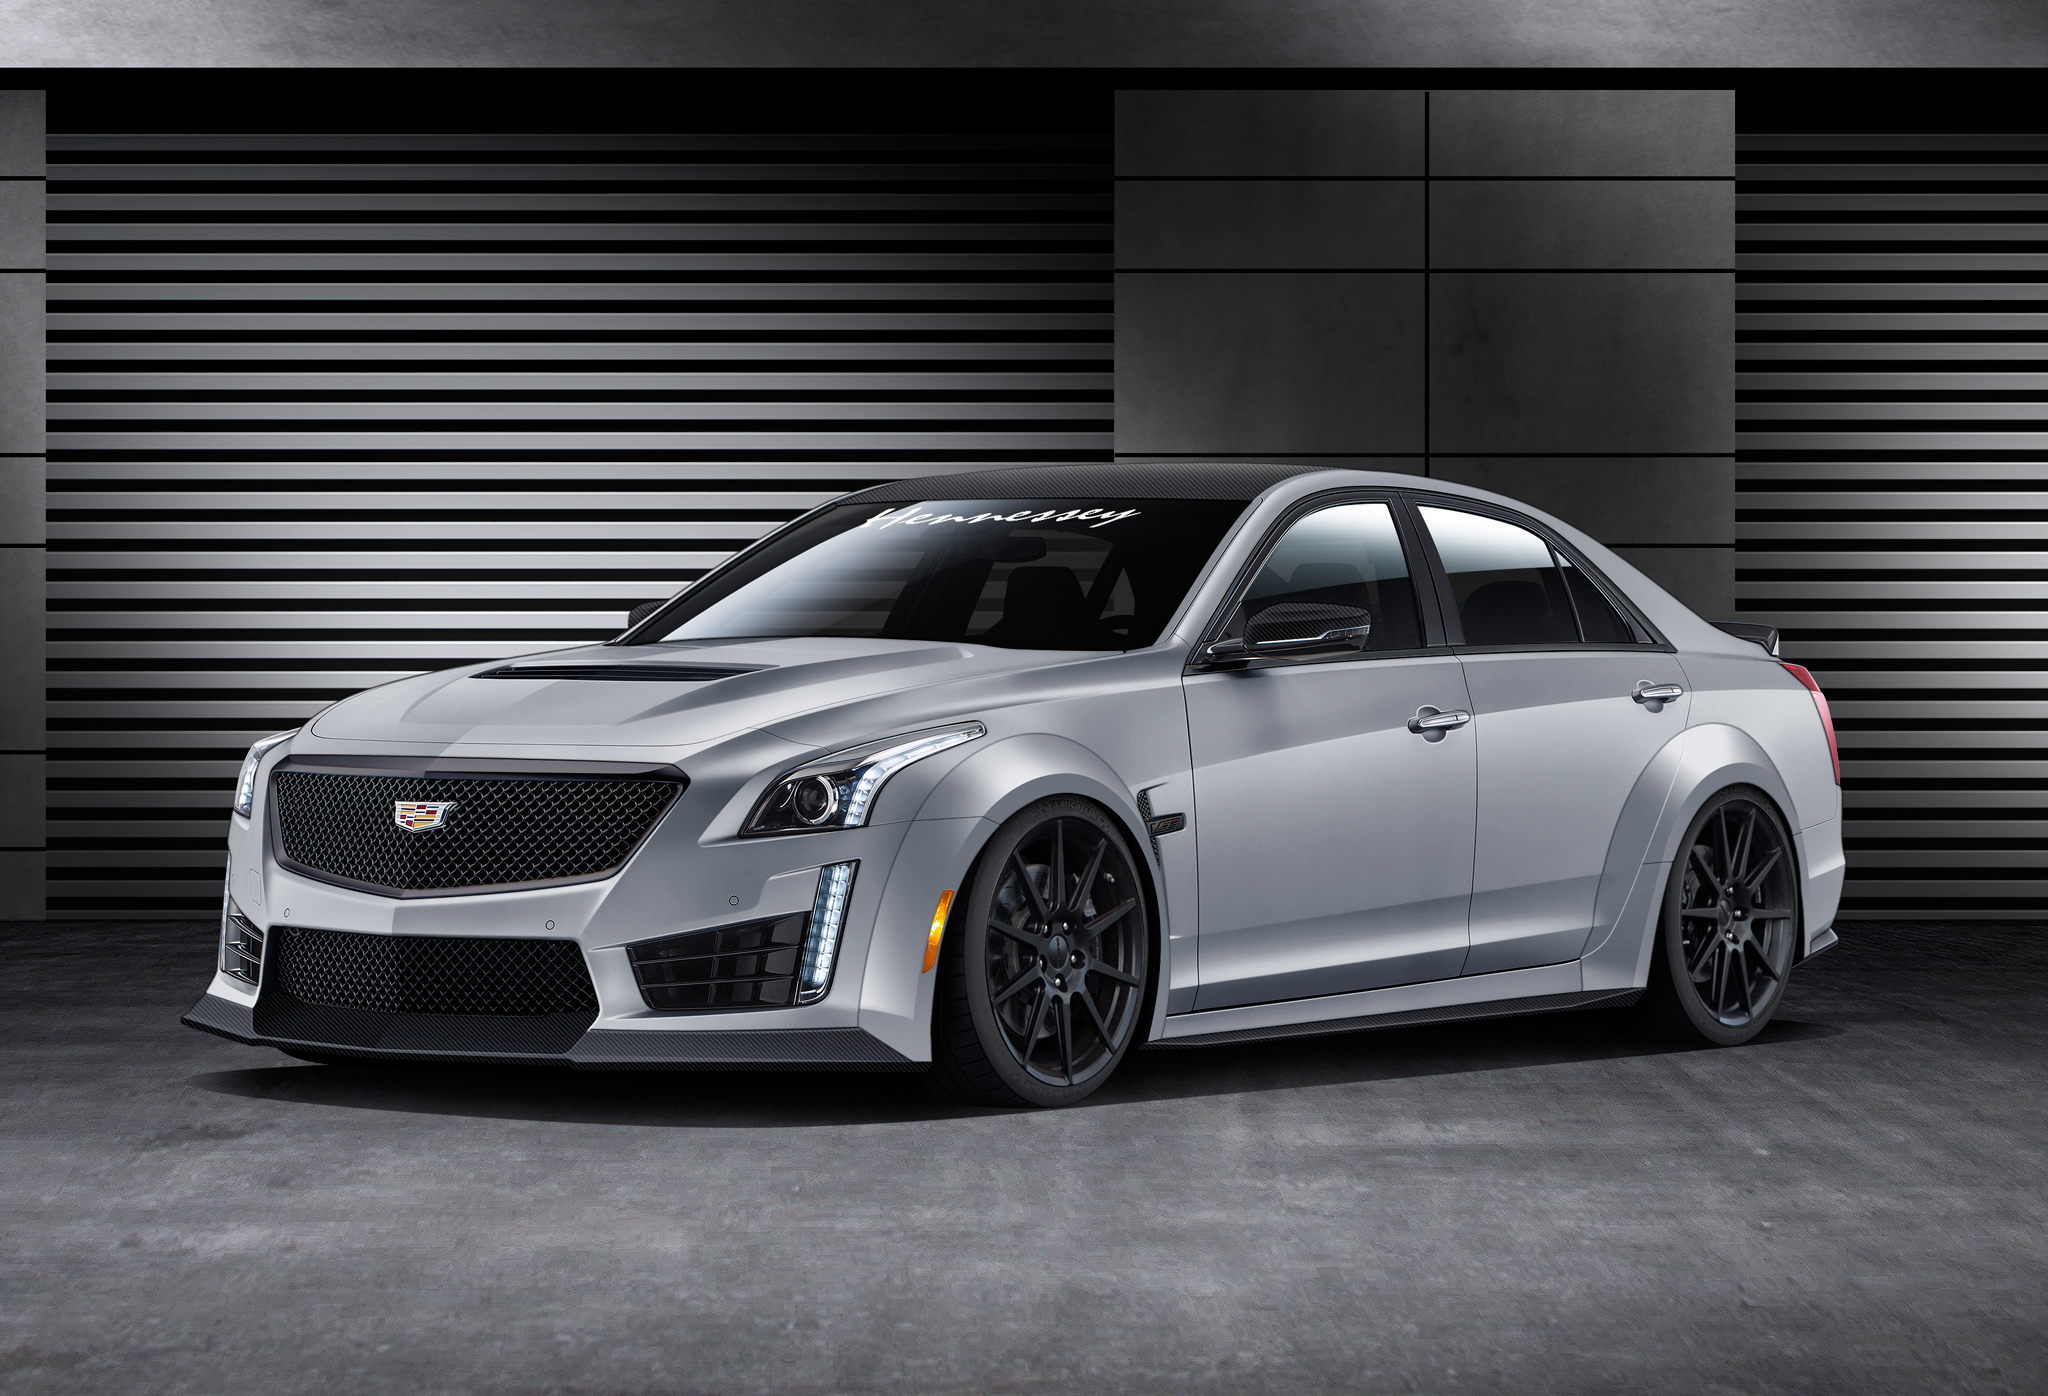 2016 cadillac cts v dialed up to 1 000 hp by hennessey performance. Black Bedroom Furniture Sets. Home Design Ideas